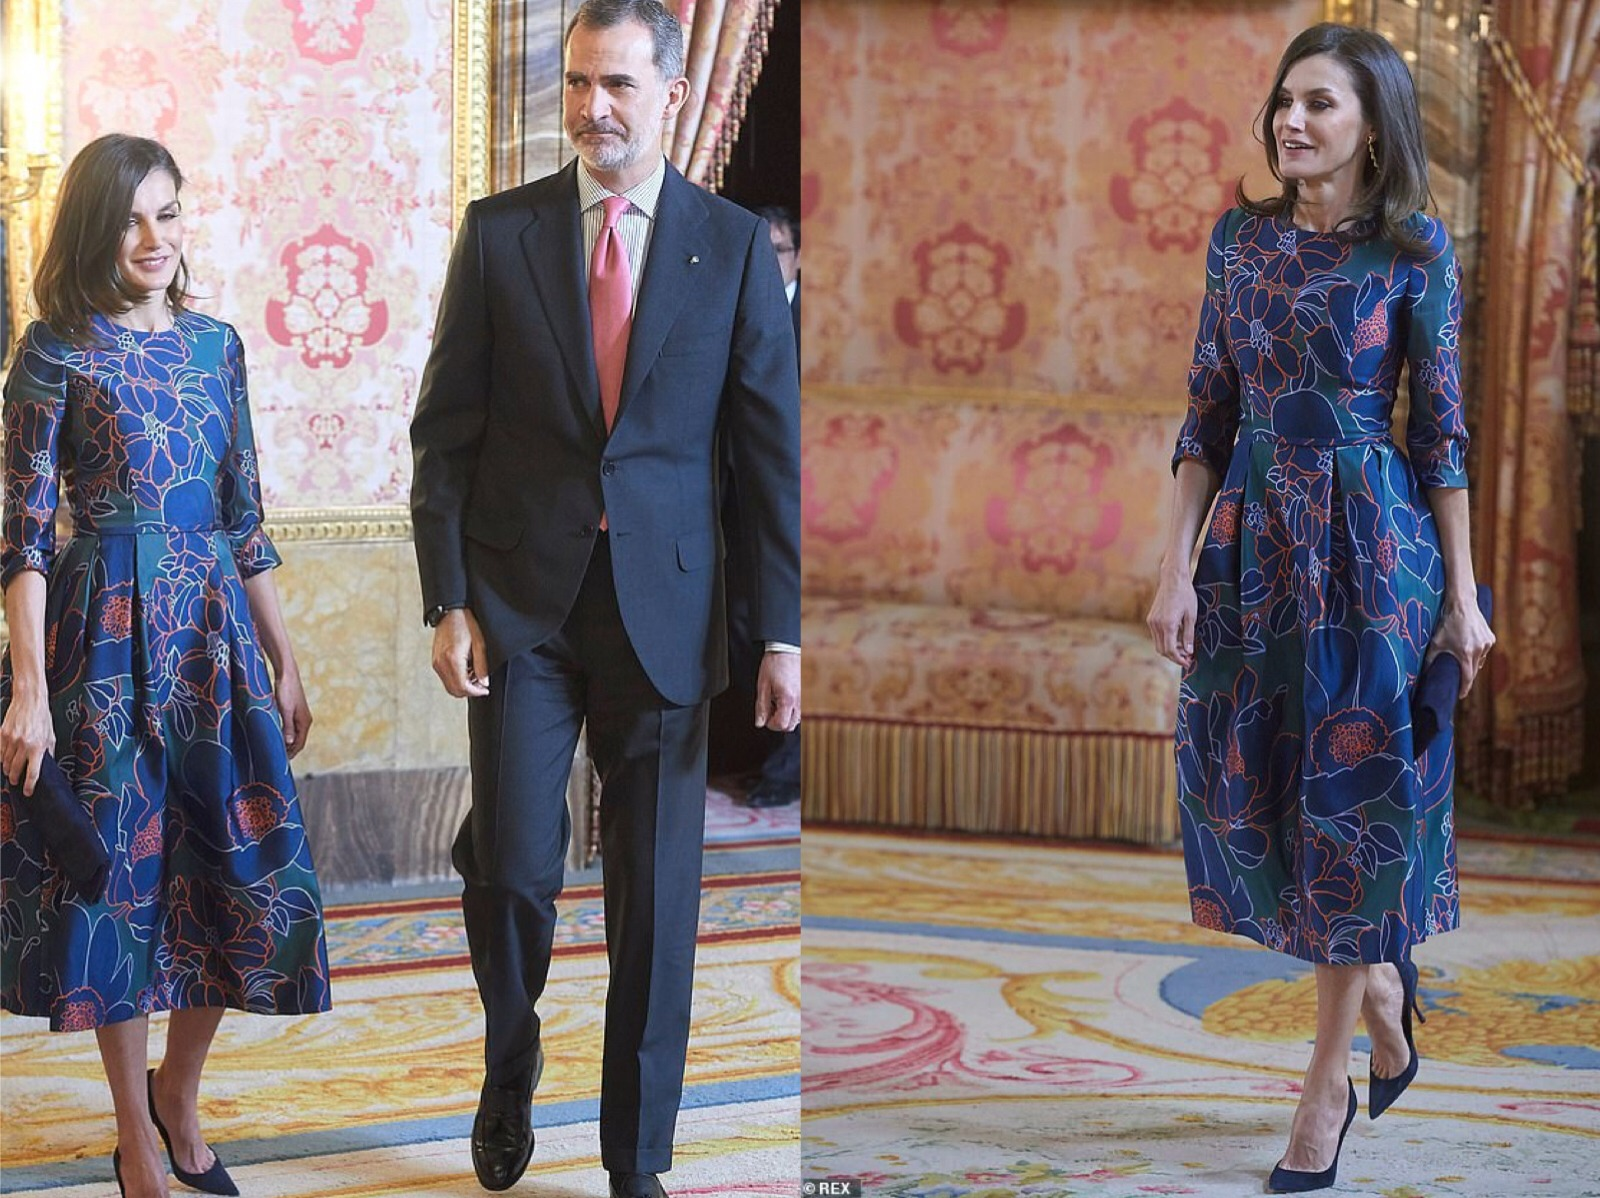 The Queen of Spain has changed her spring clothes. Big flower pattern flower bud skirt witty and high-level, unique temperament